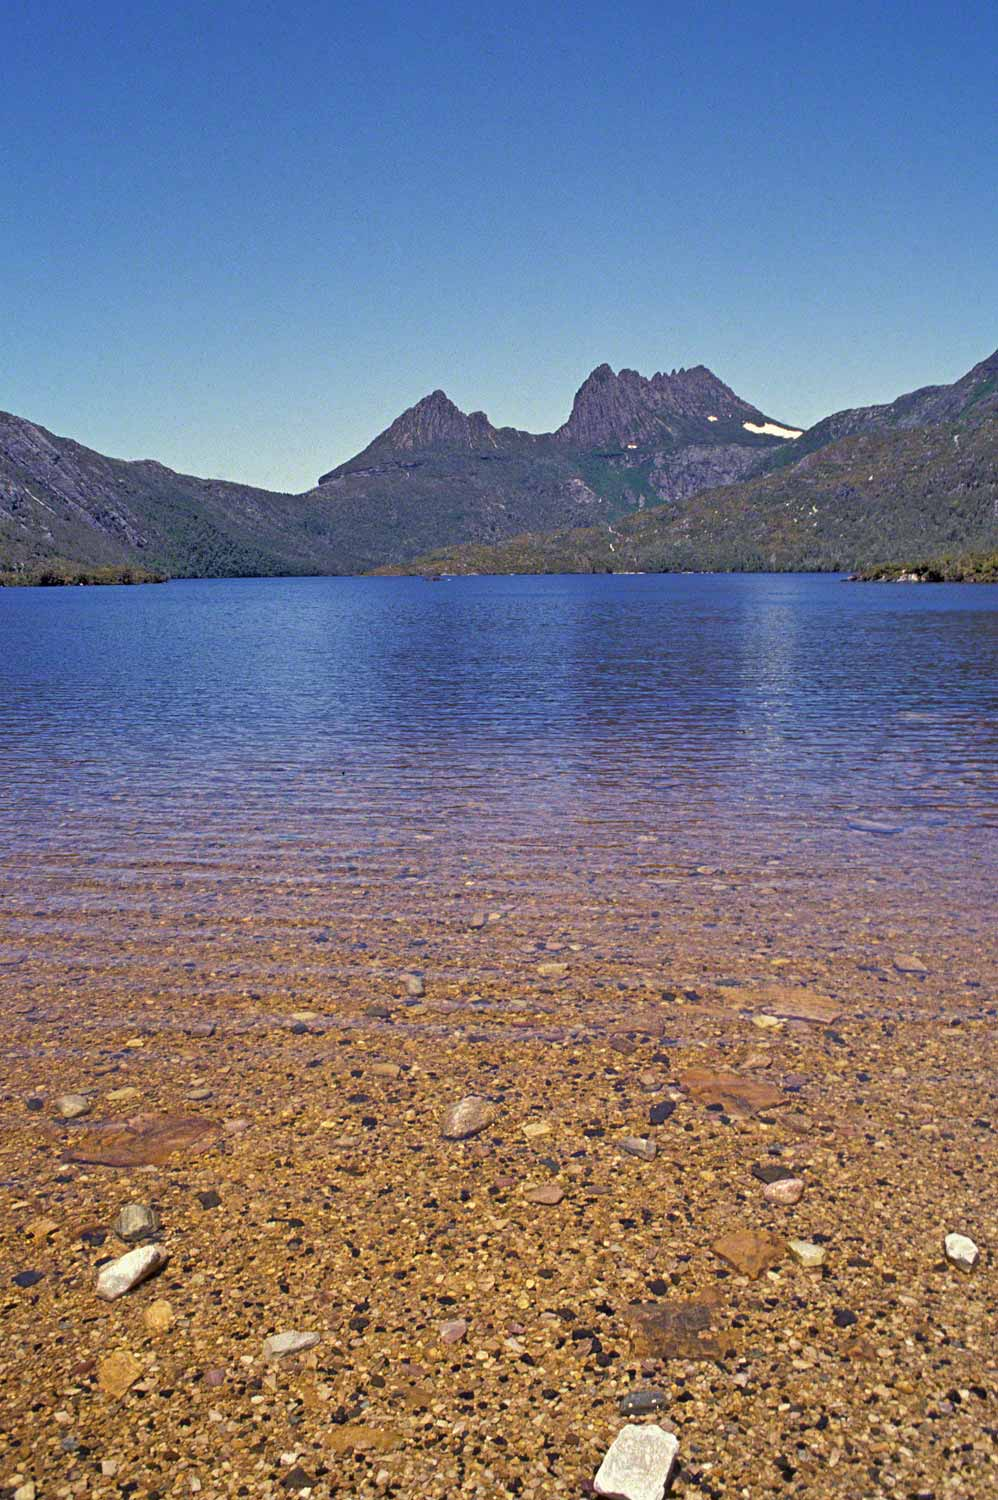 Warren-Hinder-LR-Dove-Lake-Cradle-Mountain.jpg